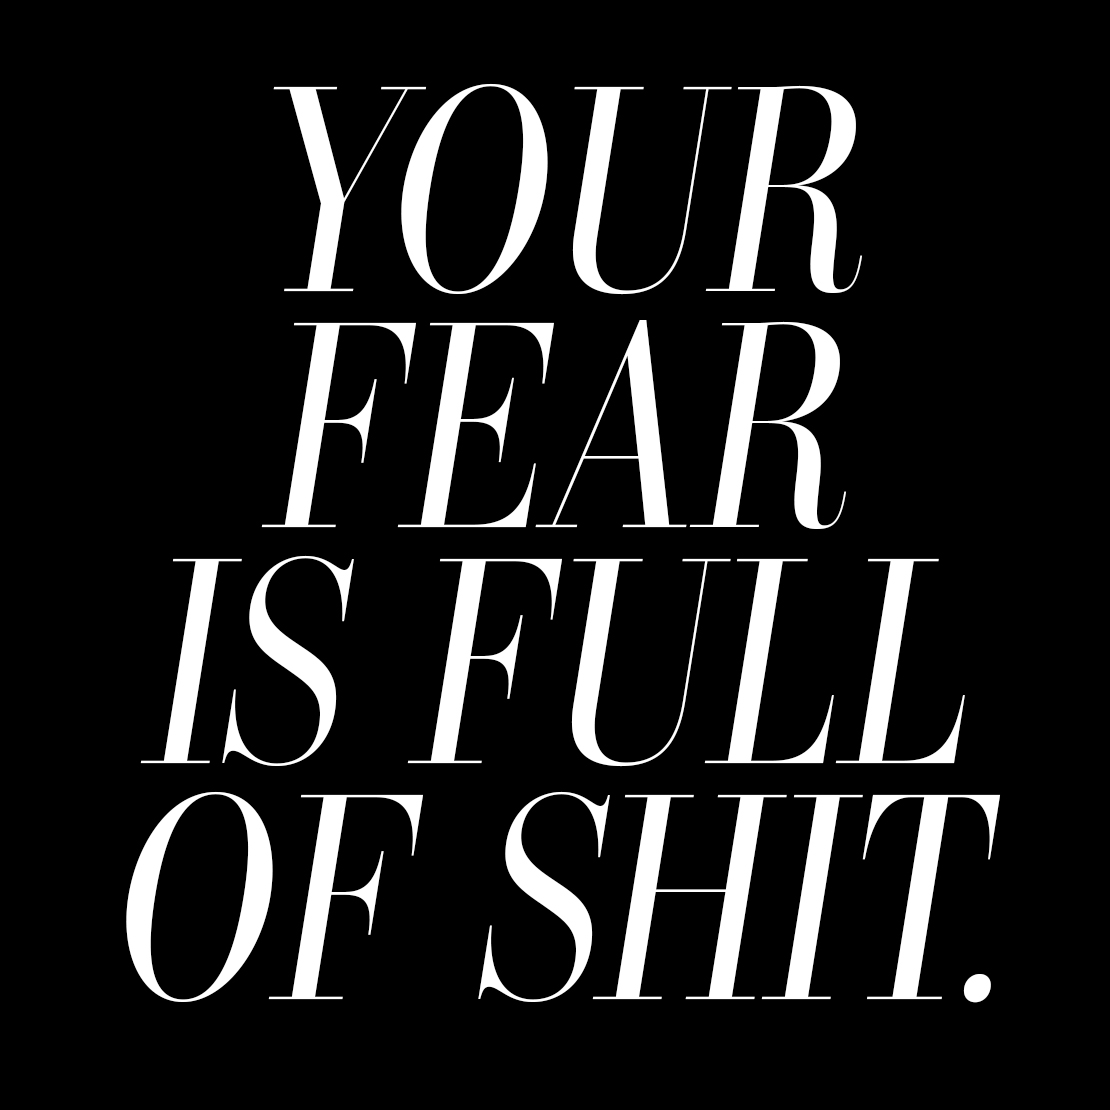 Your fear is full of shit